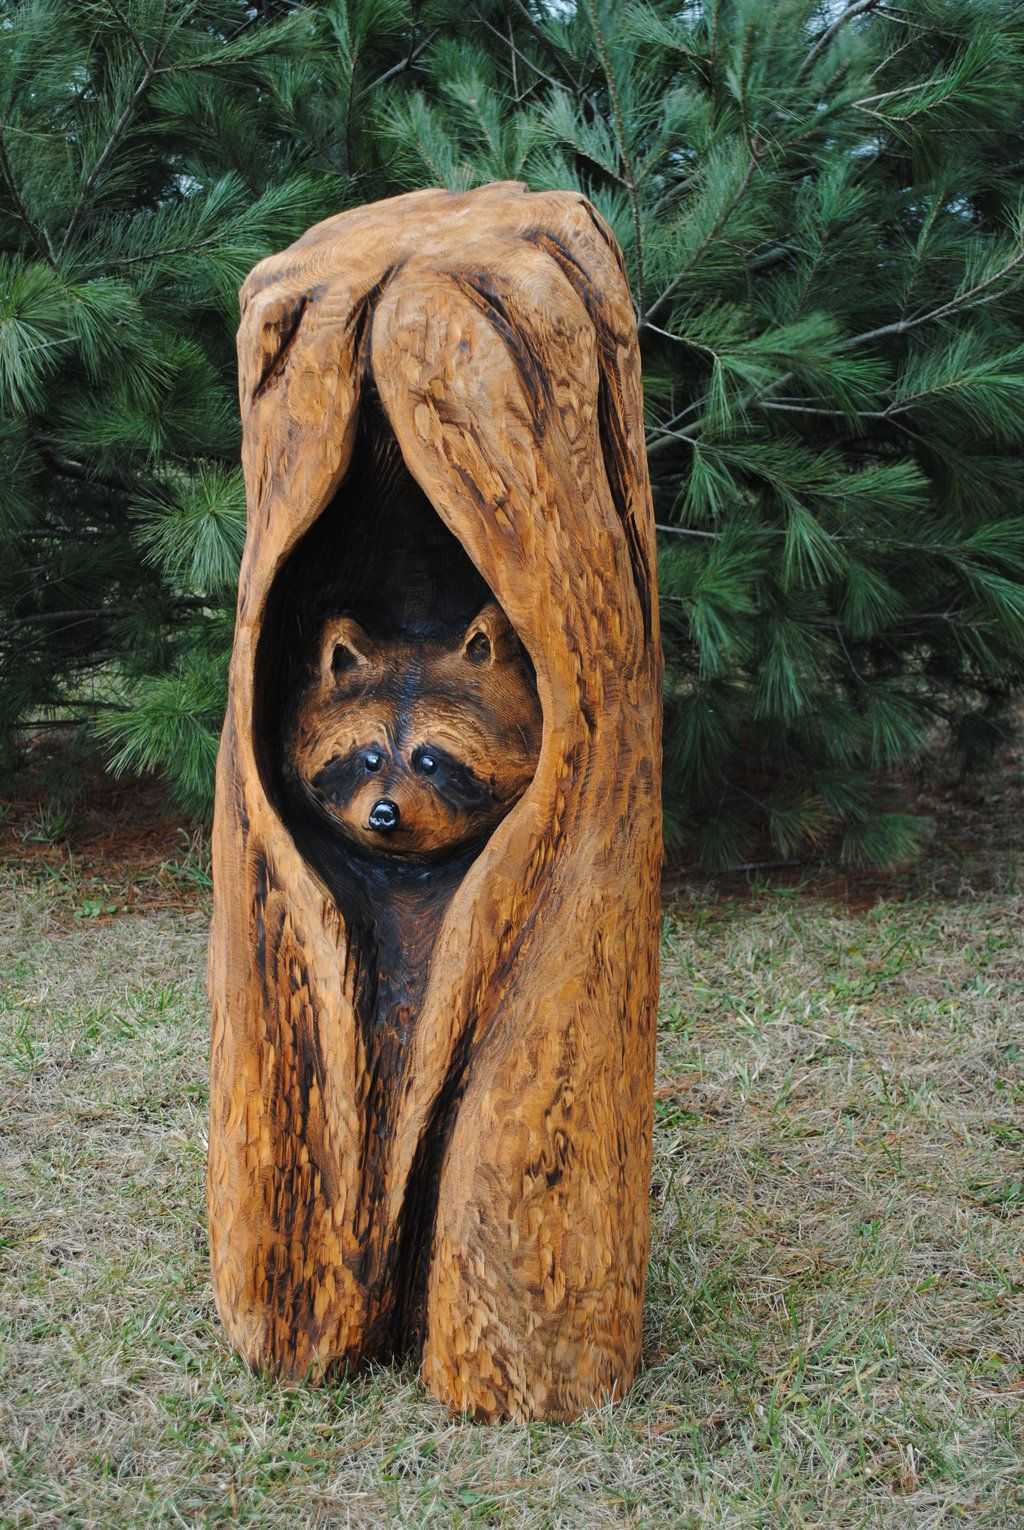 Peeking raccoon by kissel71.deviantart.com on @deviantart garden